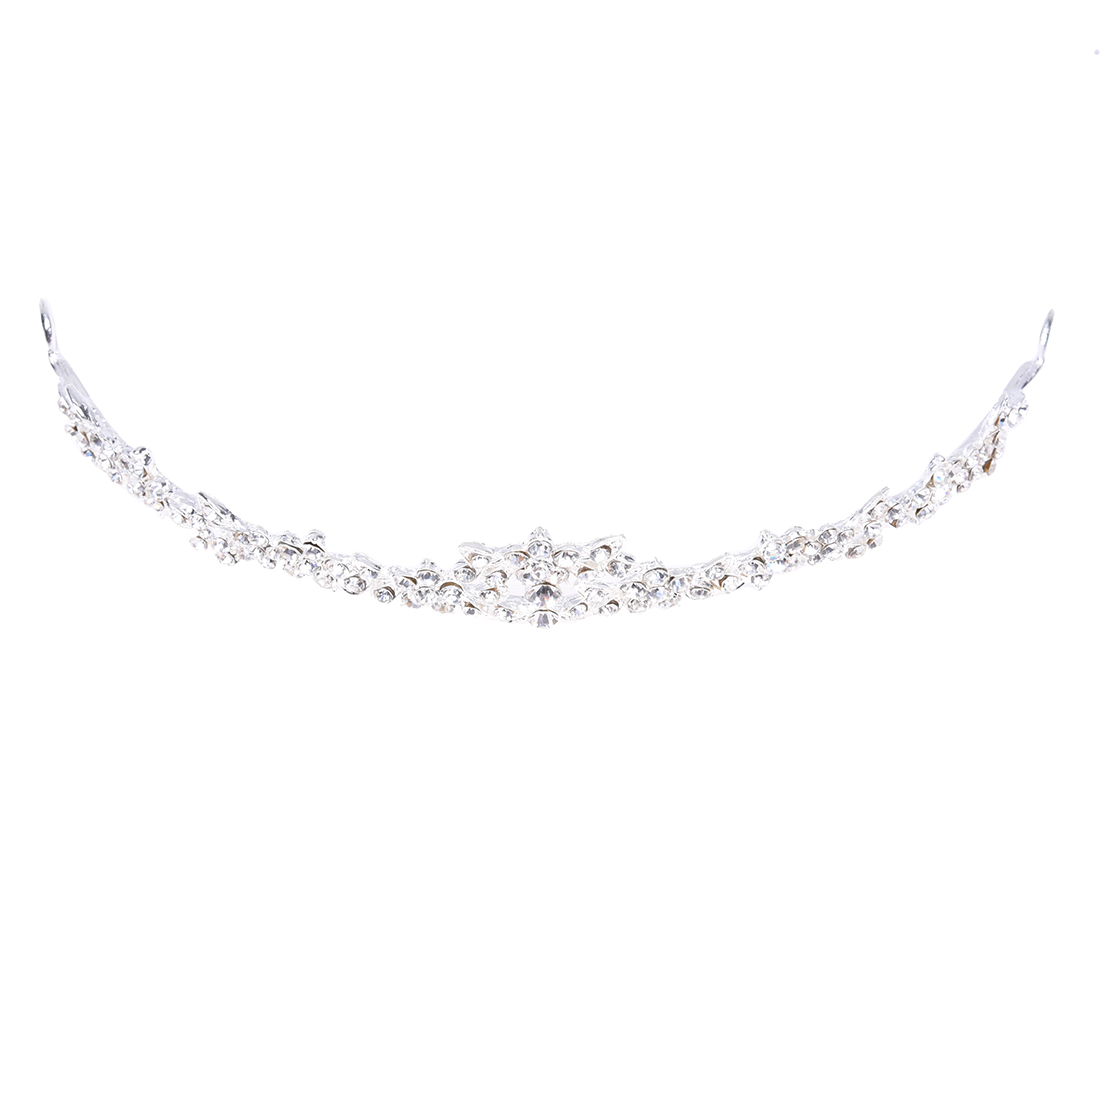 Rhinestone Crystal Flower Bridal Crown Headband Veil Tiara Wedding Prom New